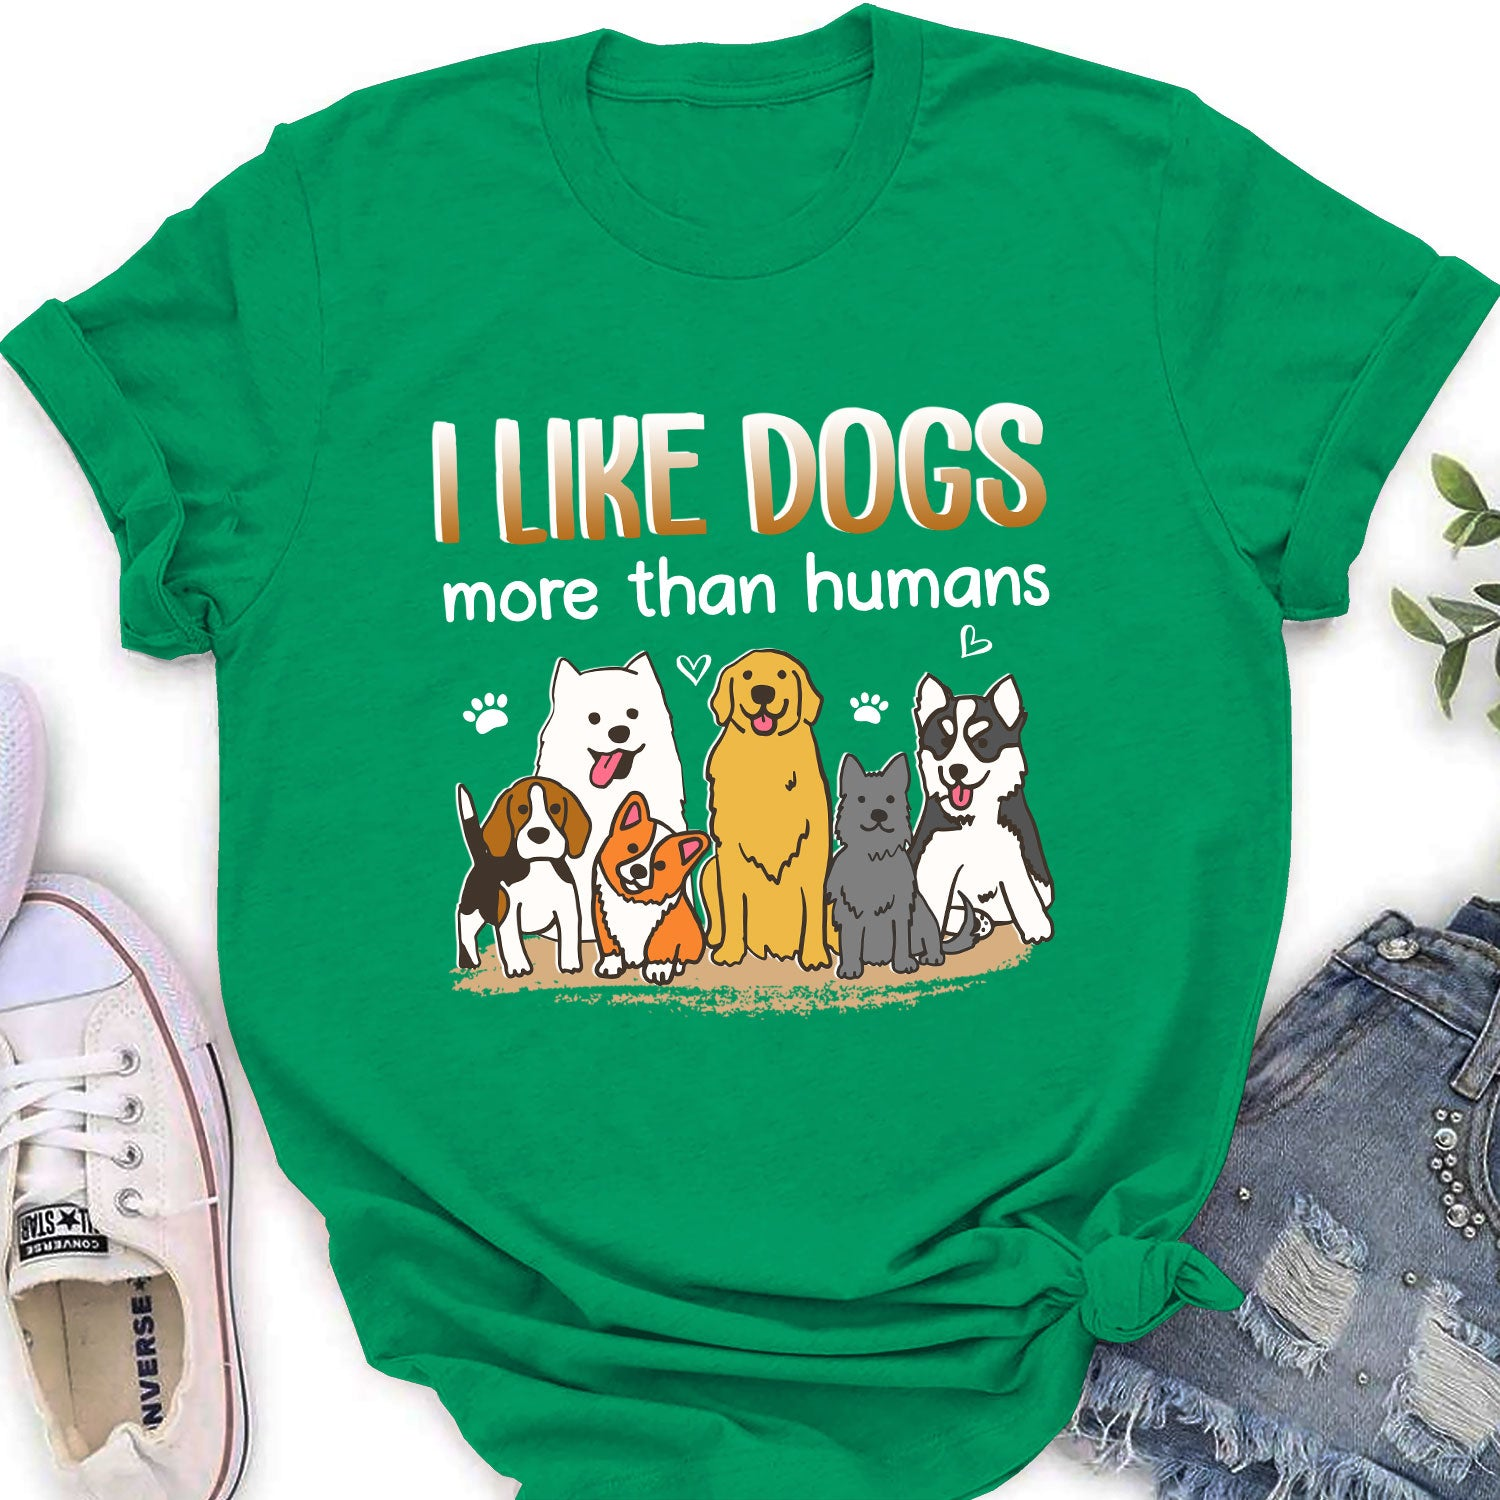 I like dogs - Classic  women's T-shirt